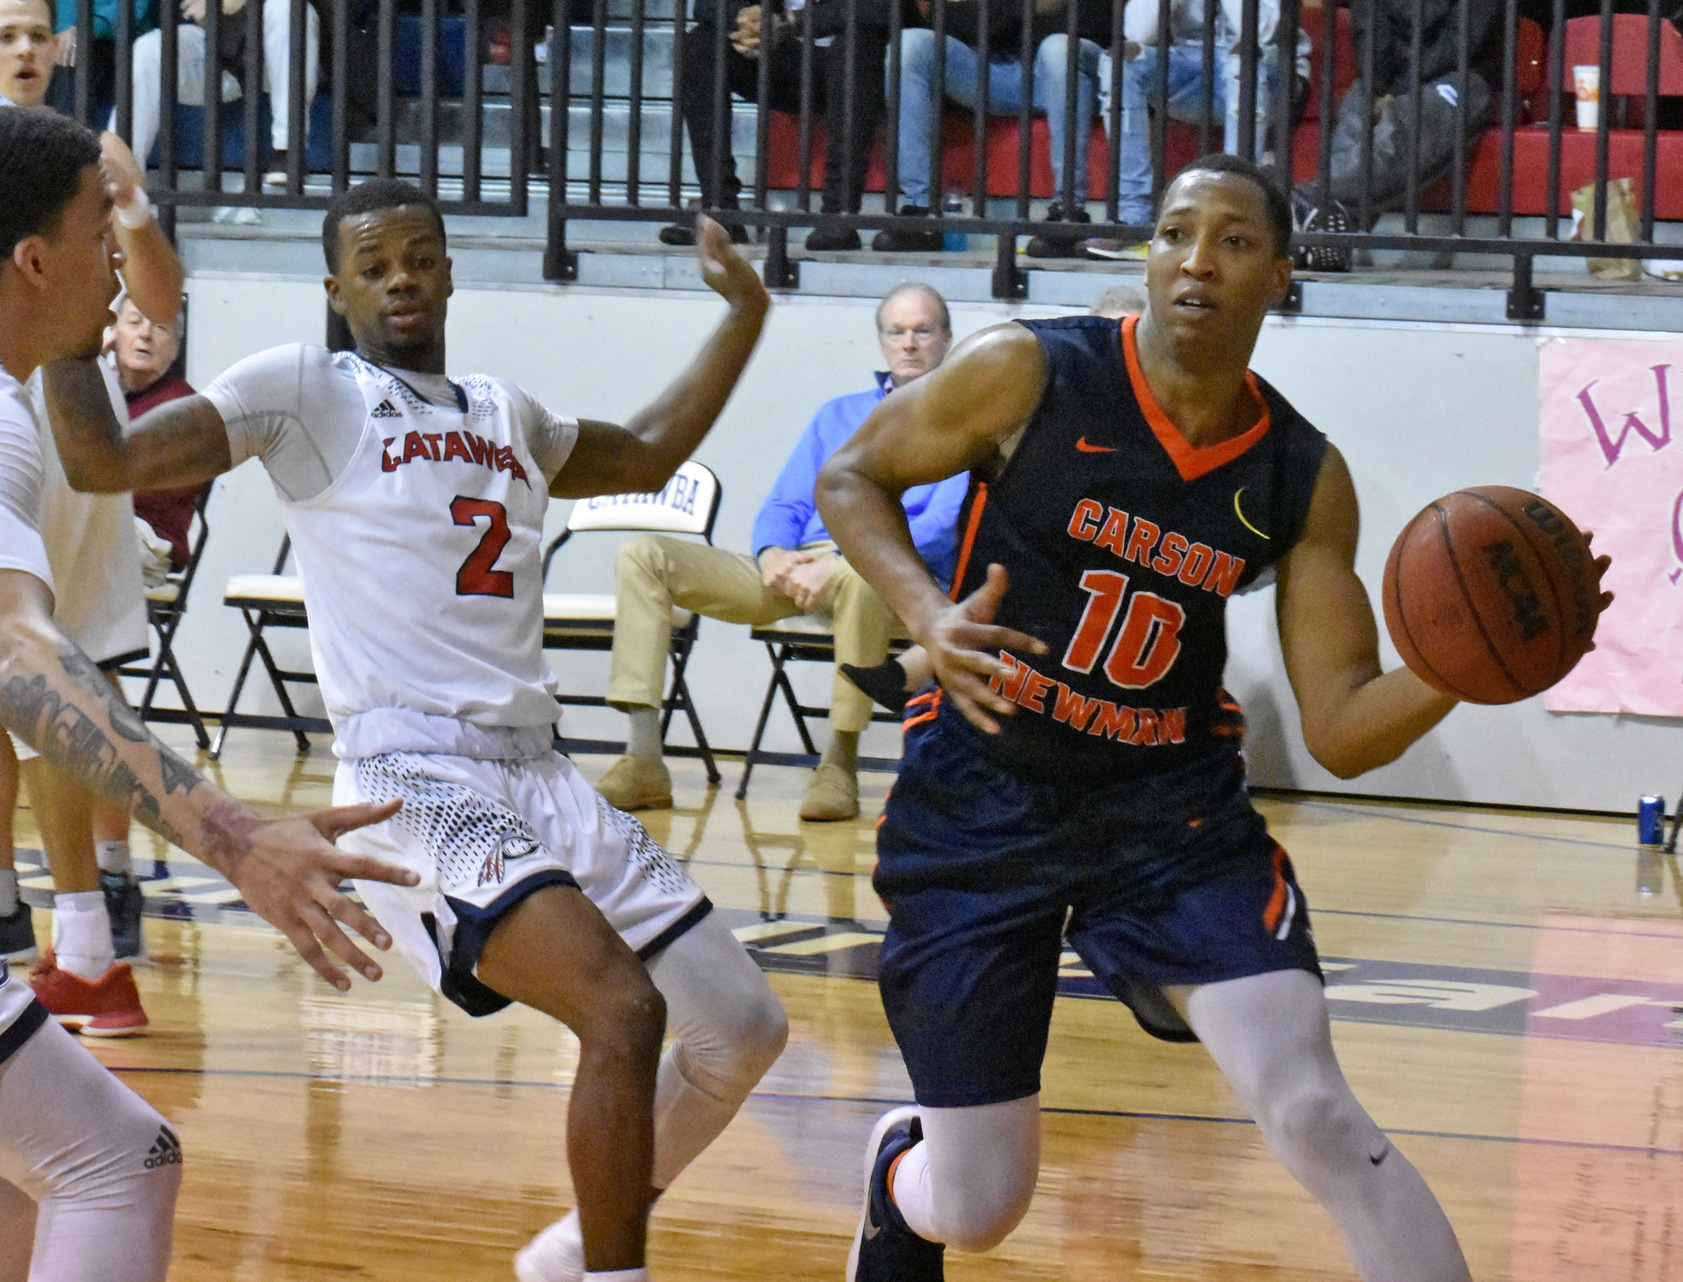 Staunch second half sends C-N soaring over Catawba 104-89